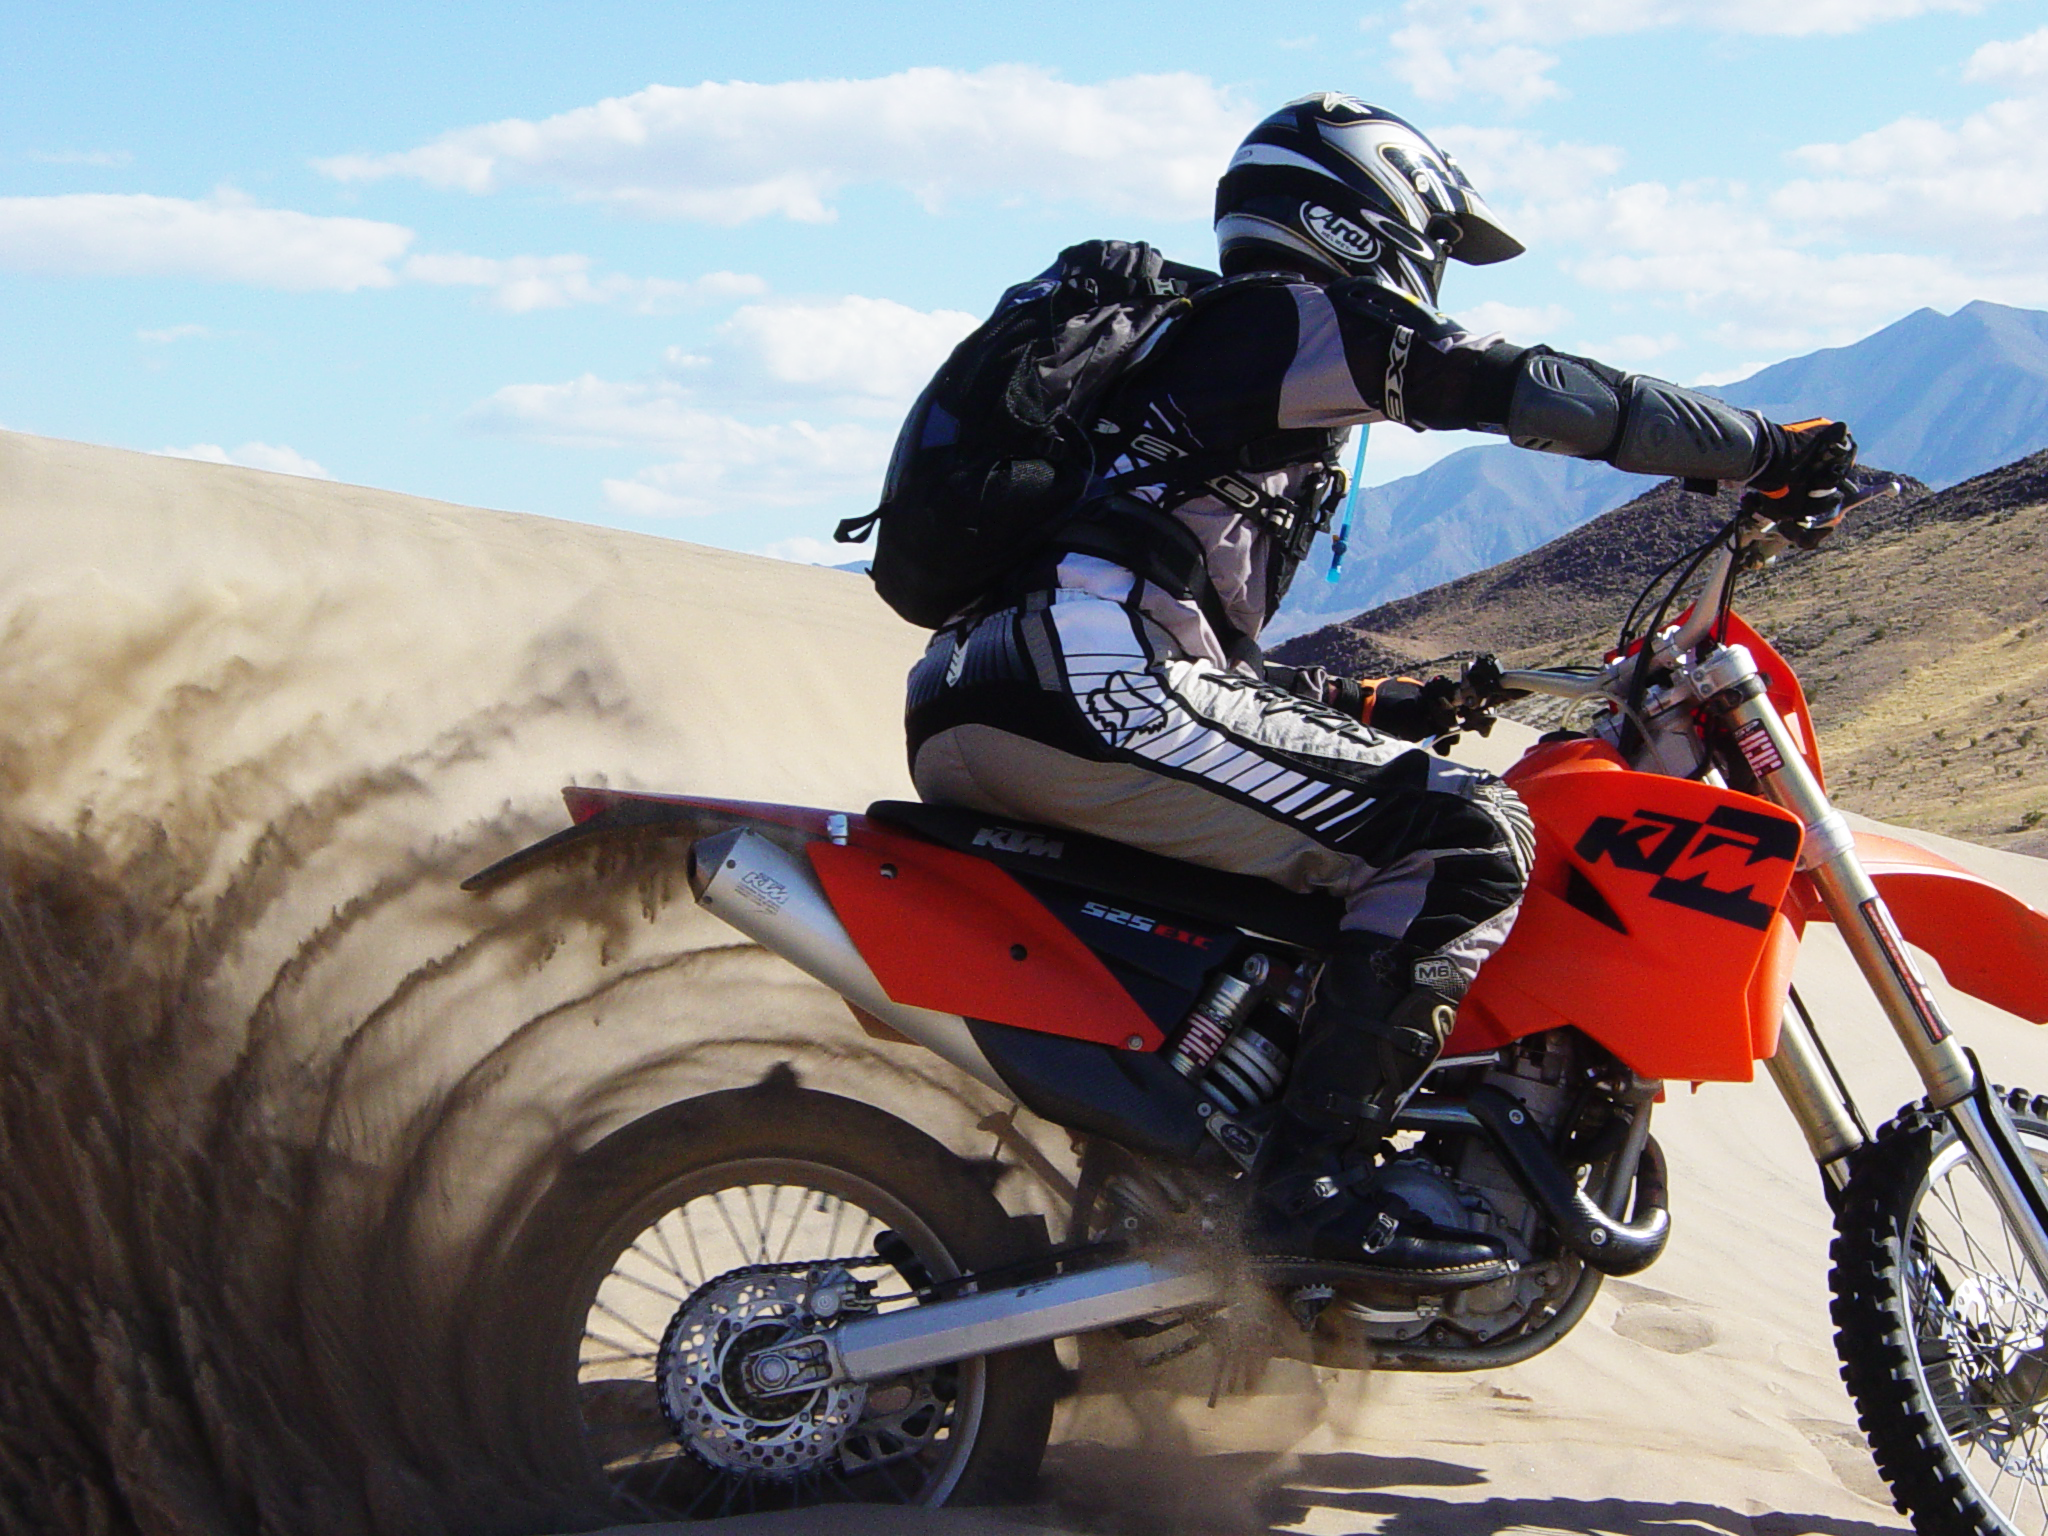 Better Street Riding? Get Dirty! ~ The Riding Obsession